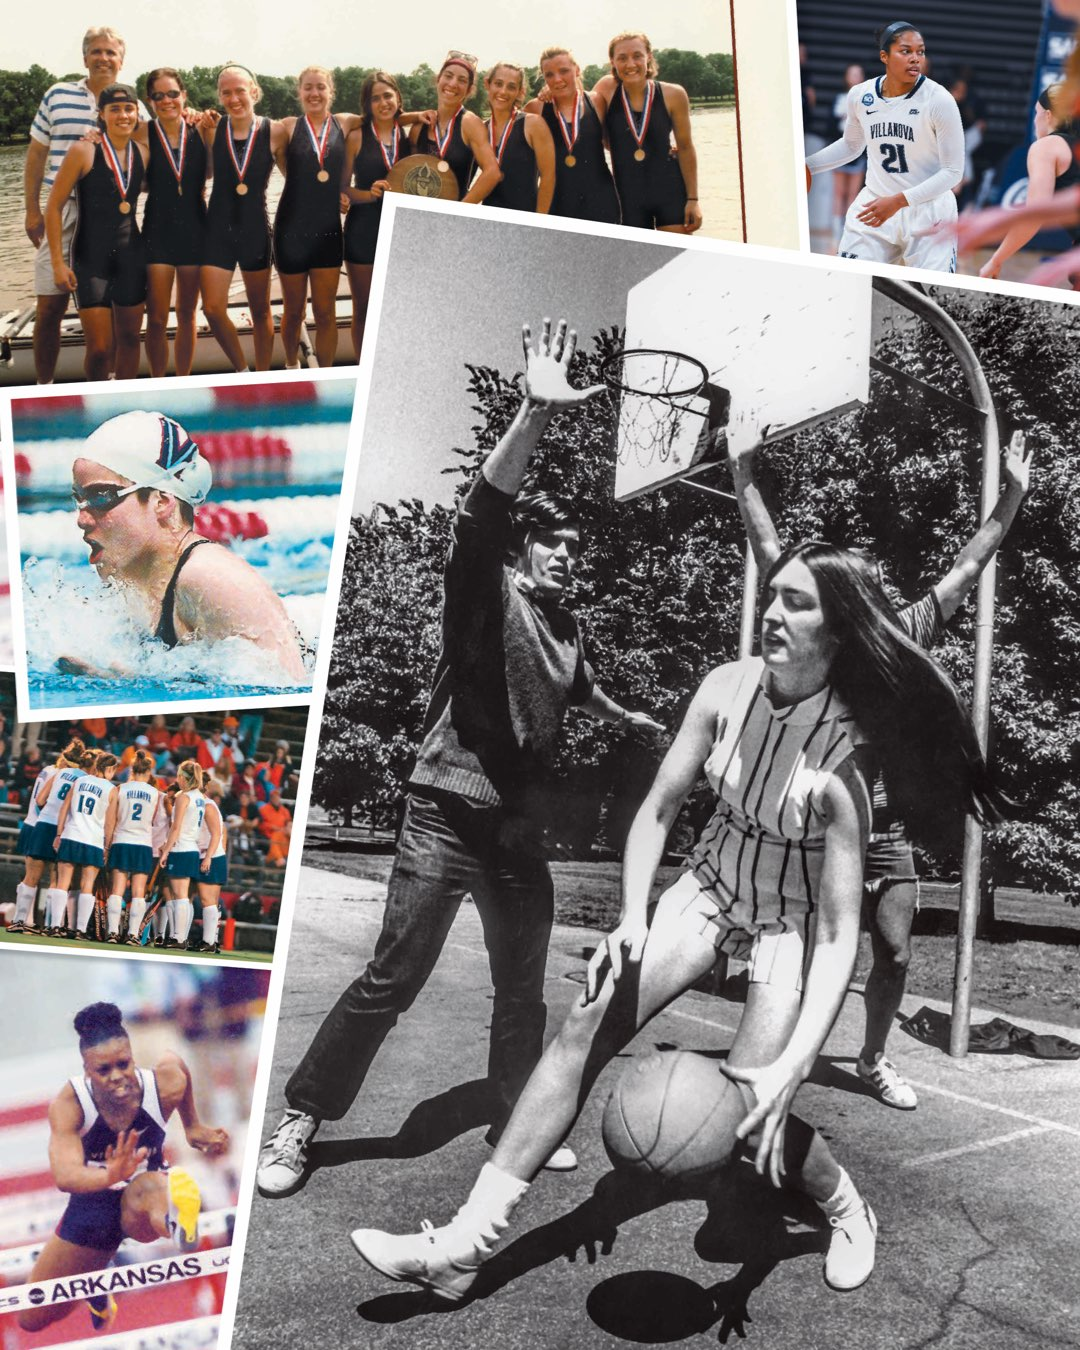 A collage of photos from years past of female Villanova athletes in basketball, rowing, swimming, field hockey and track